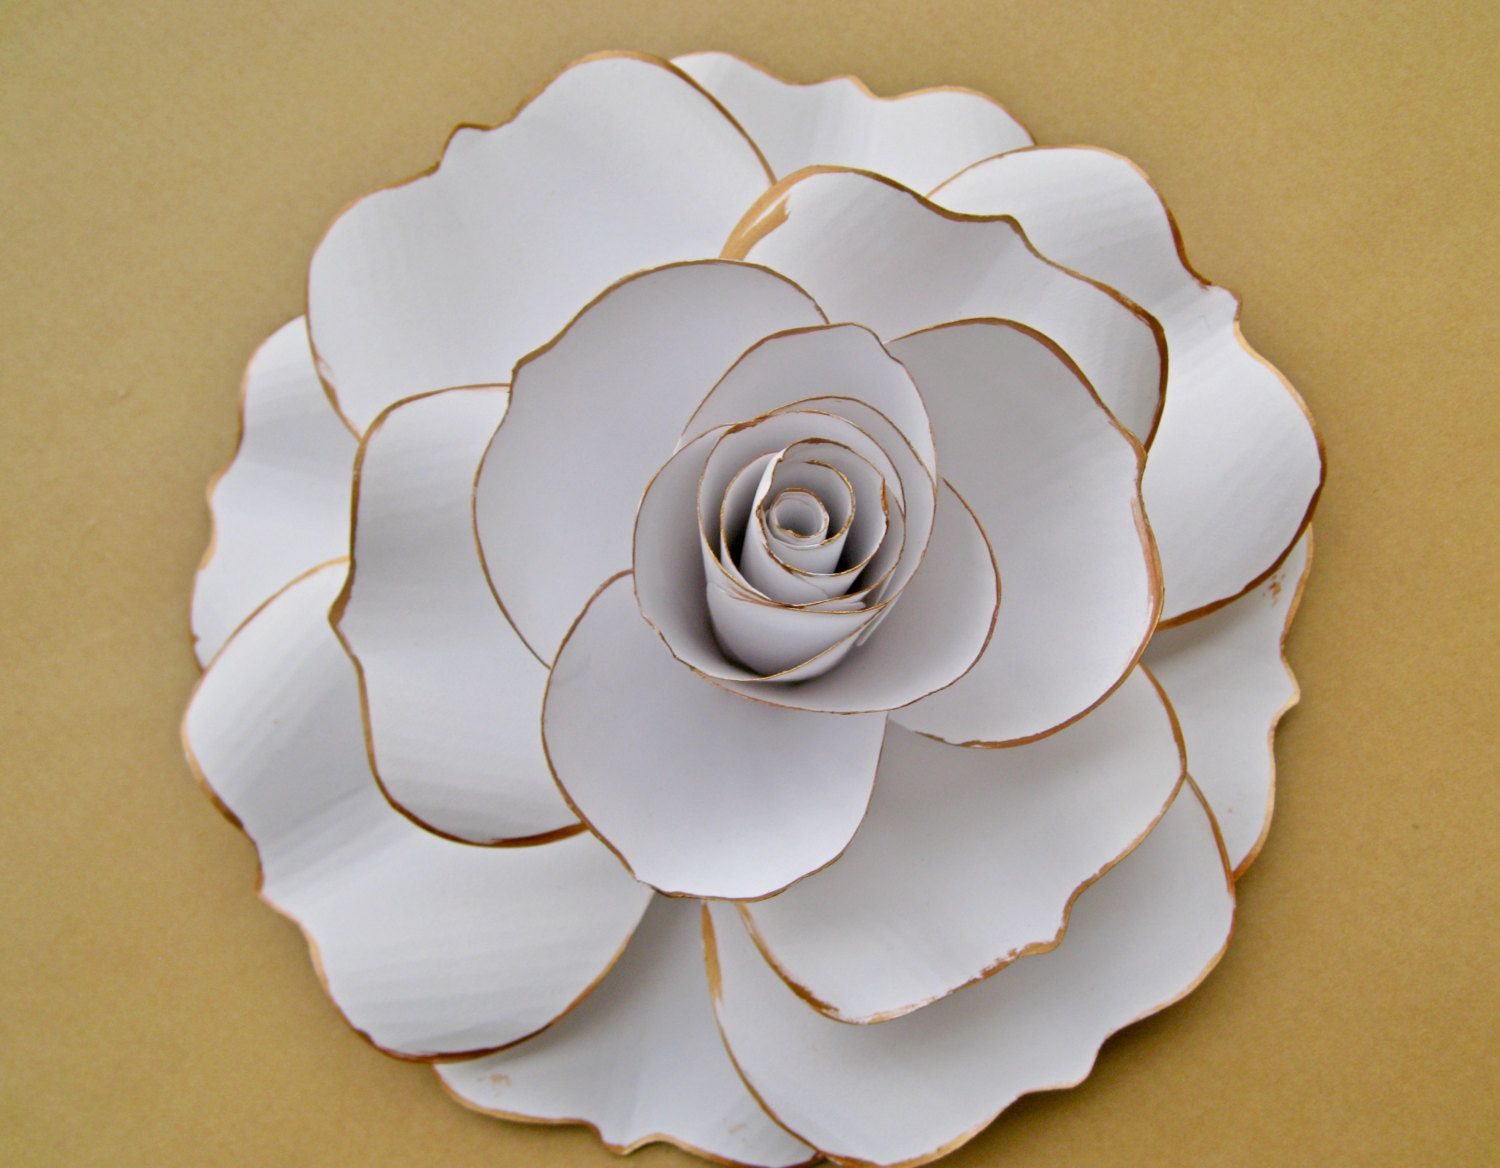 Giant white paper rose white flower blooms extra large paper giant white paper rose white flower blooms extra large paper rose spring summer dhlflorist Choice Image